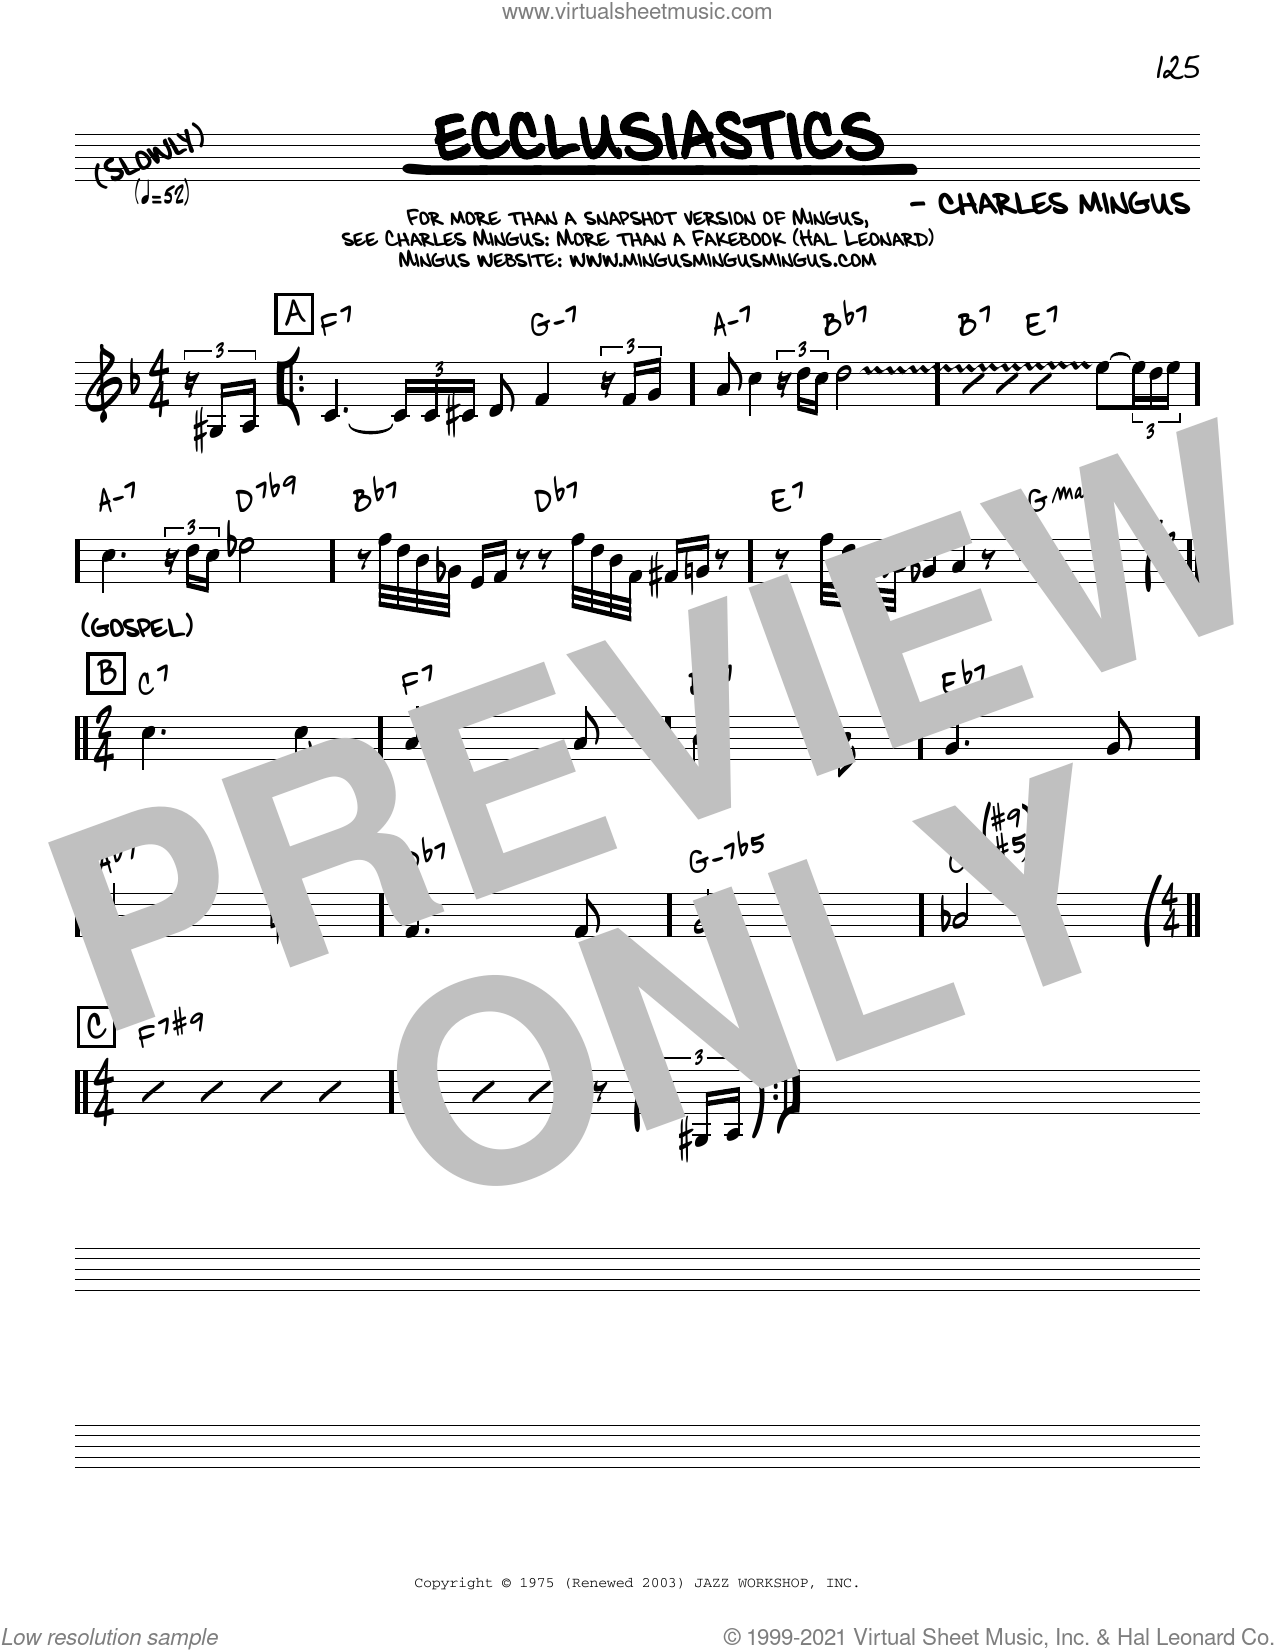 Ecclusiastics [Reharmonized version] (arr. Jack Grassel) sheet music for voice and other instruments (real book) by Charles Mingus and Jack Grassel, intermediate skill level